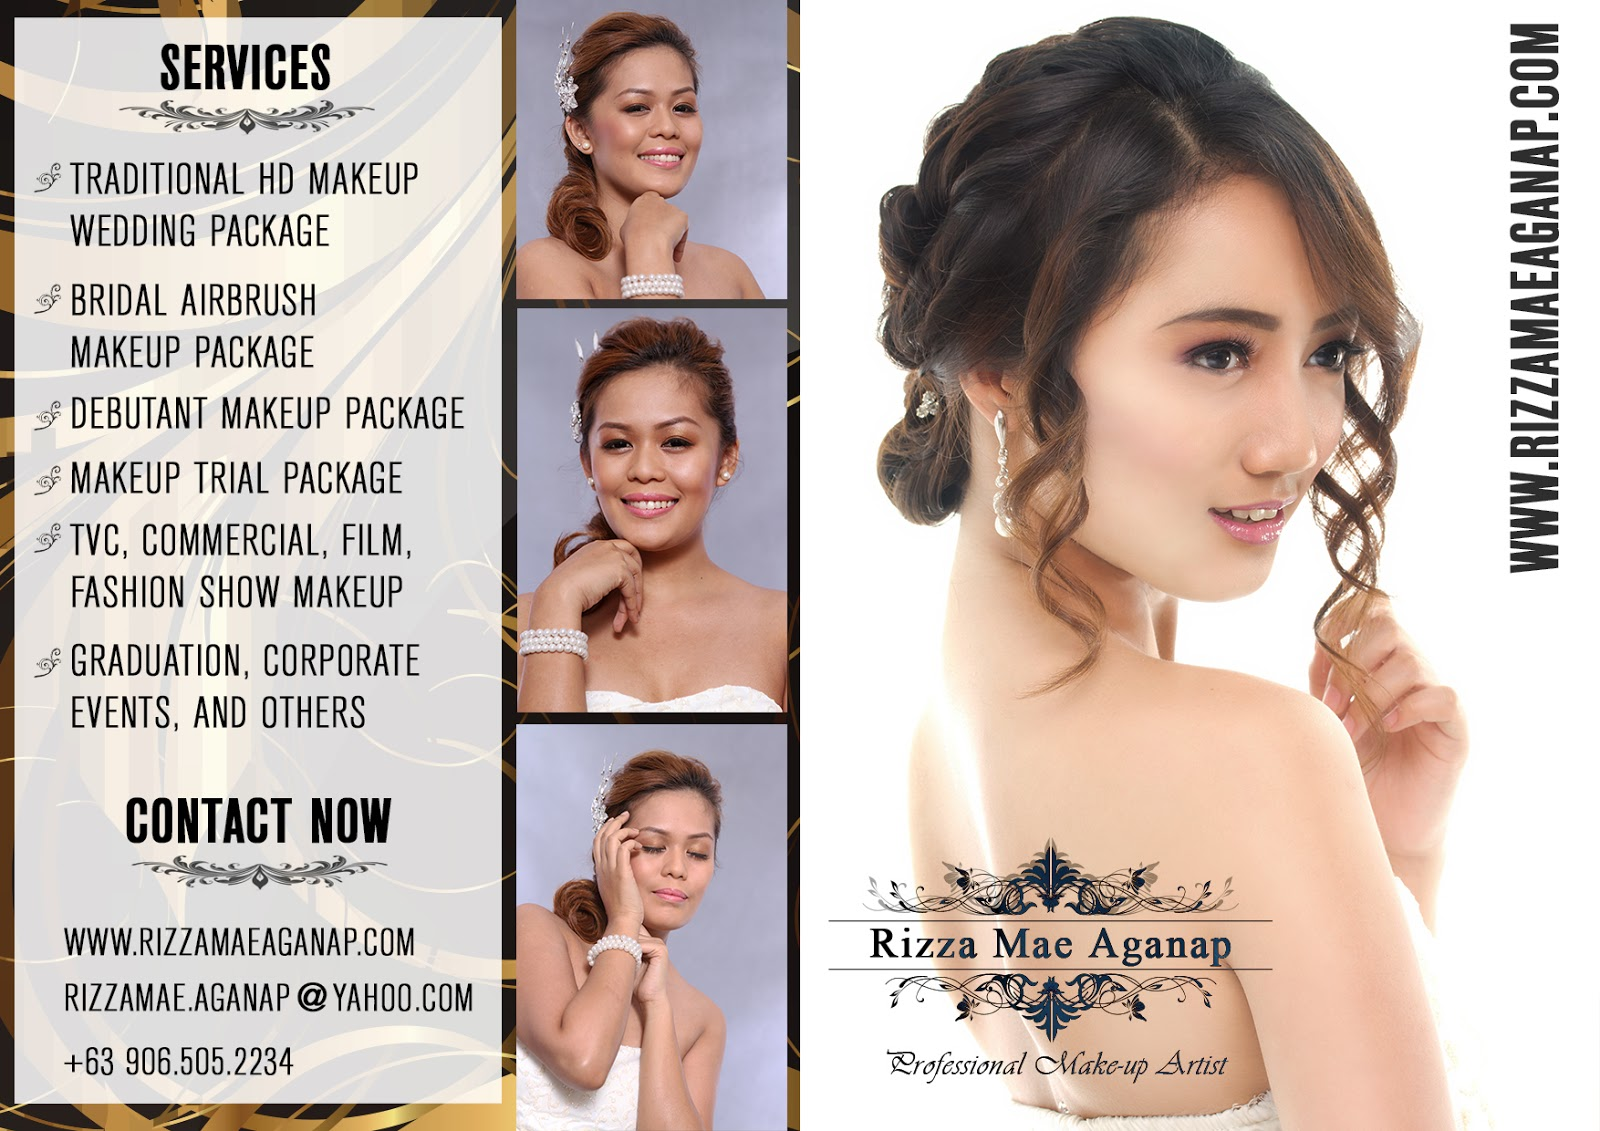 professional wedding makeup artist in manila,philippines